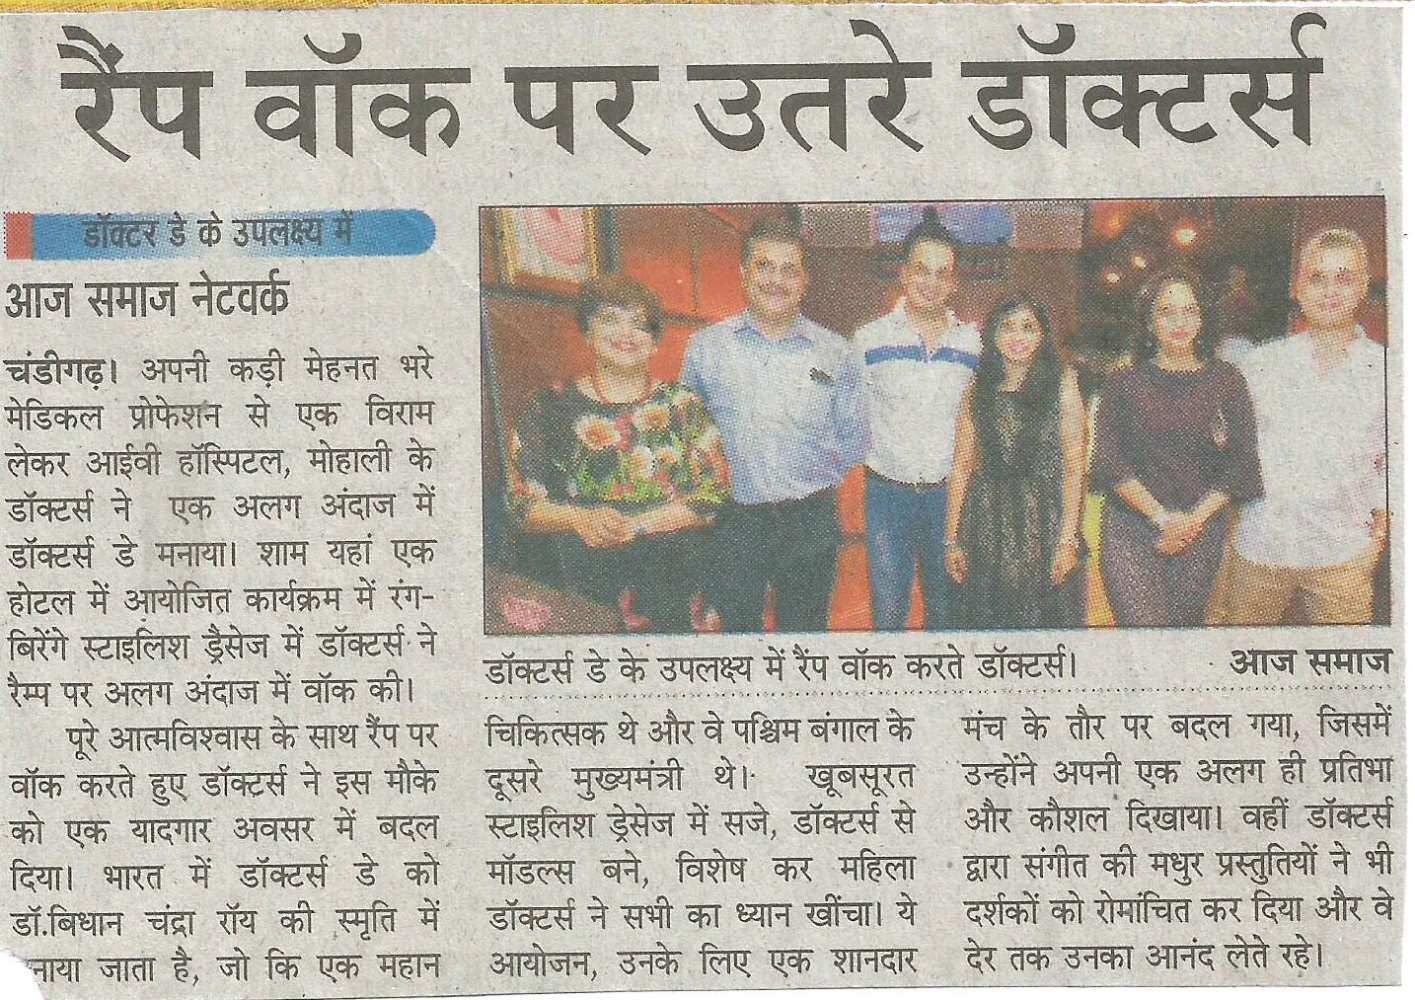 Coverage updates of Doctors Day event